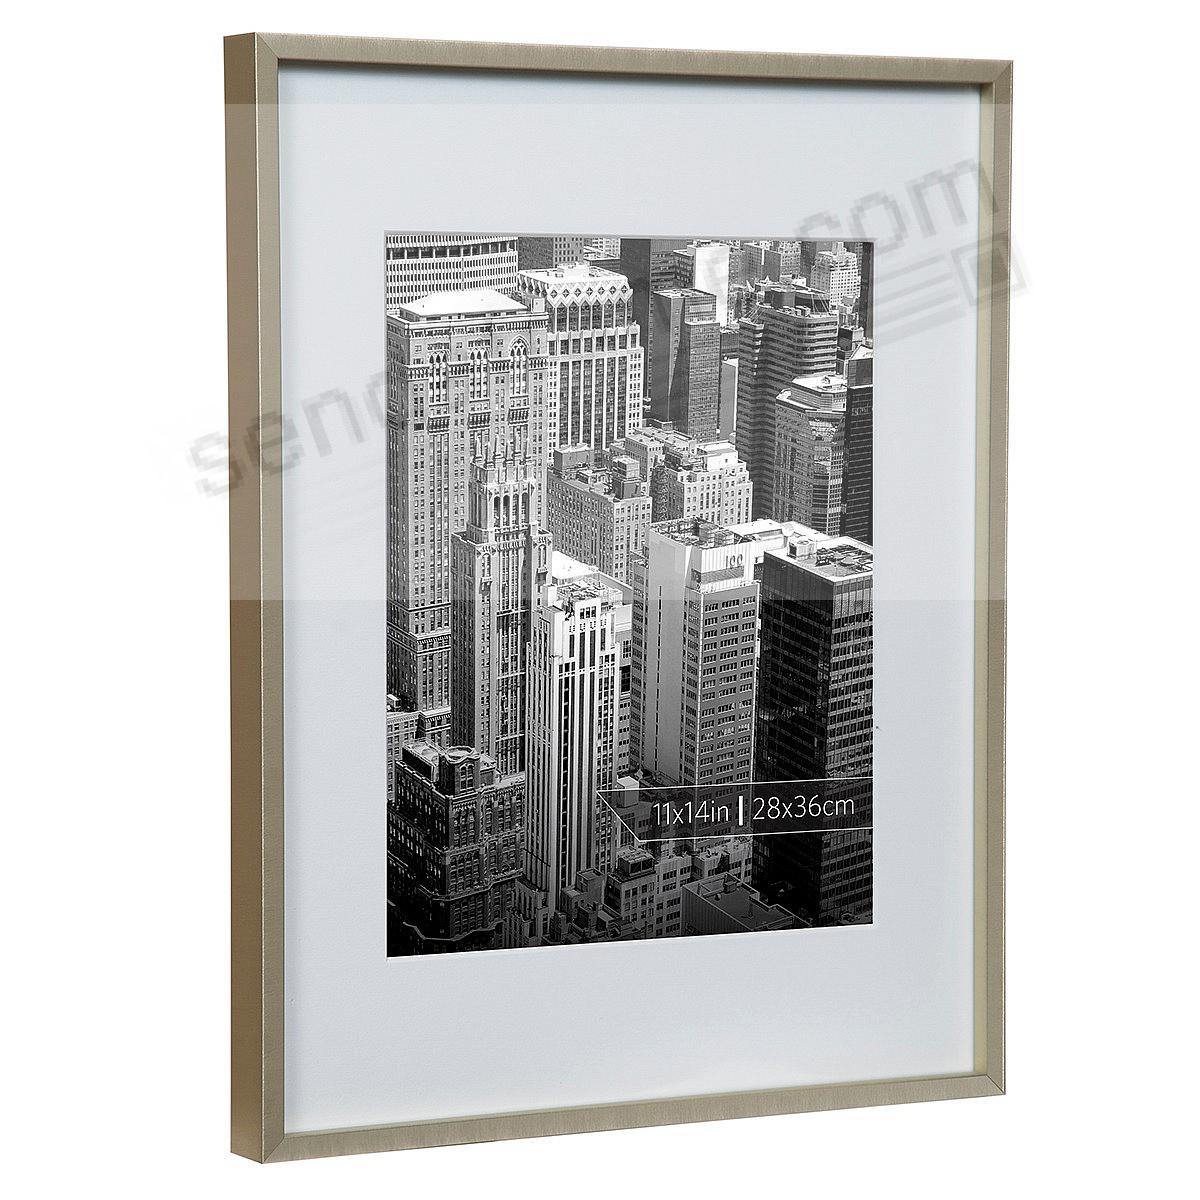 ALPHA Metallic Gold w/White Mat 11x14/8x10 frame by Nielsen®